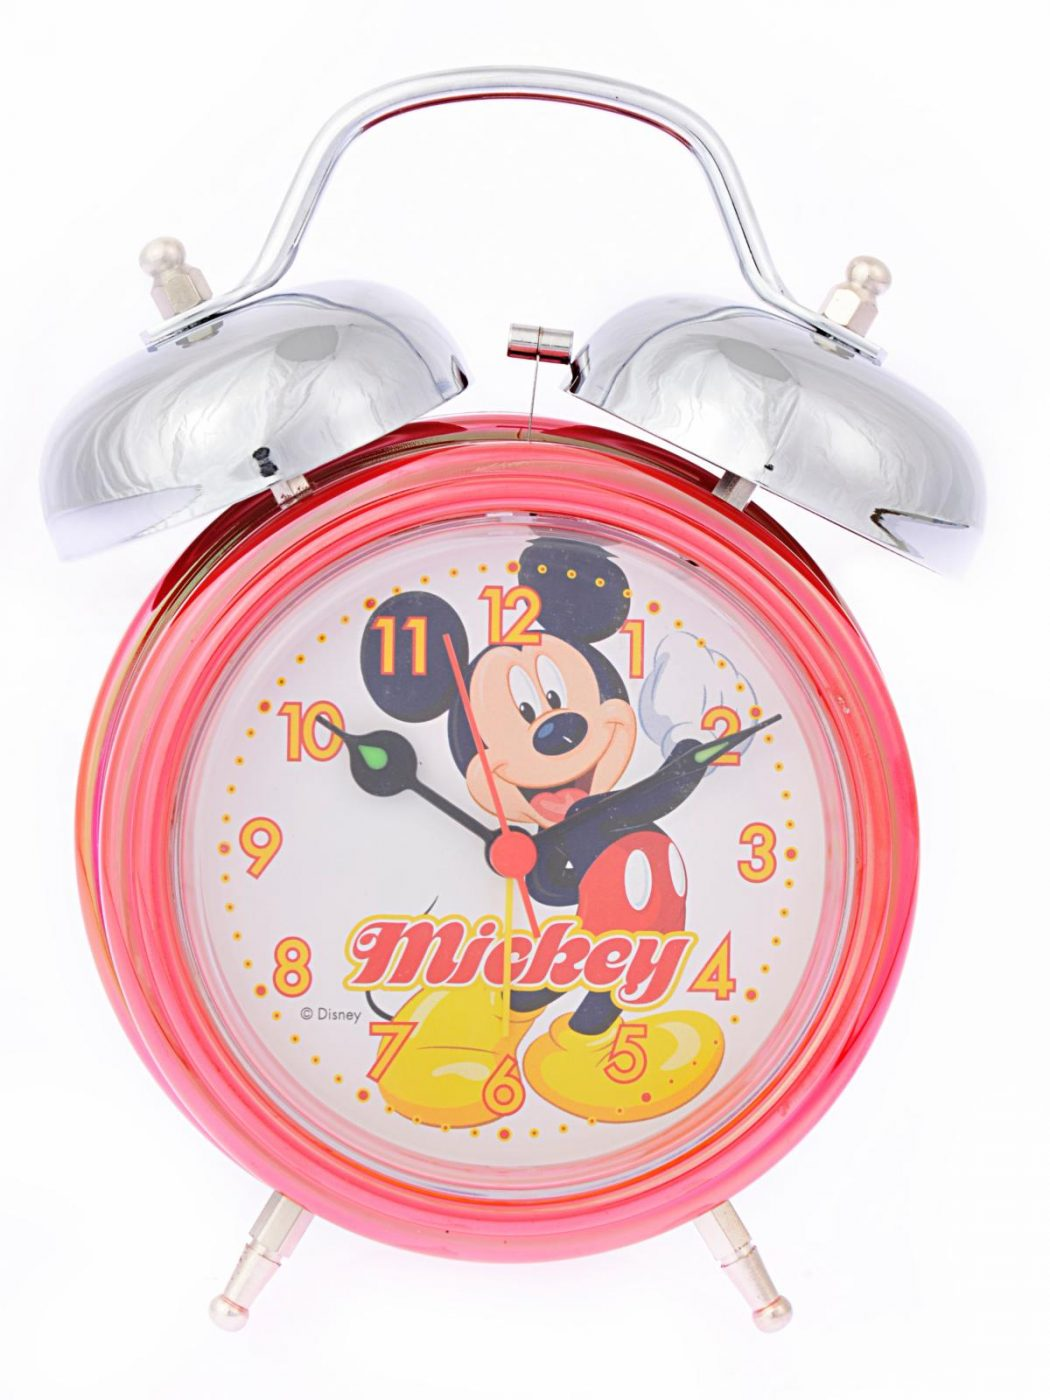 10823_1-disney-mickey-alarm-clock 15 Creative giveaways ideas for kids